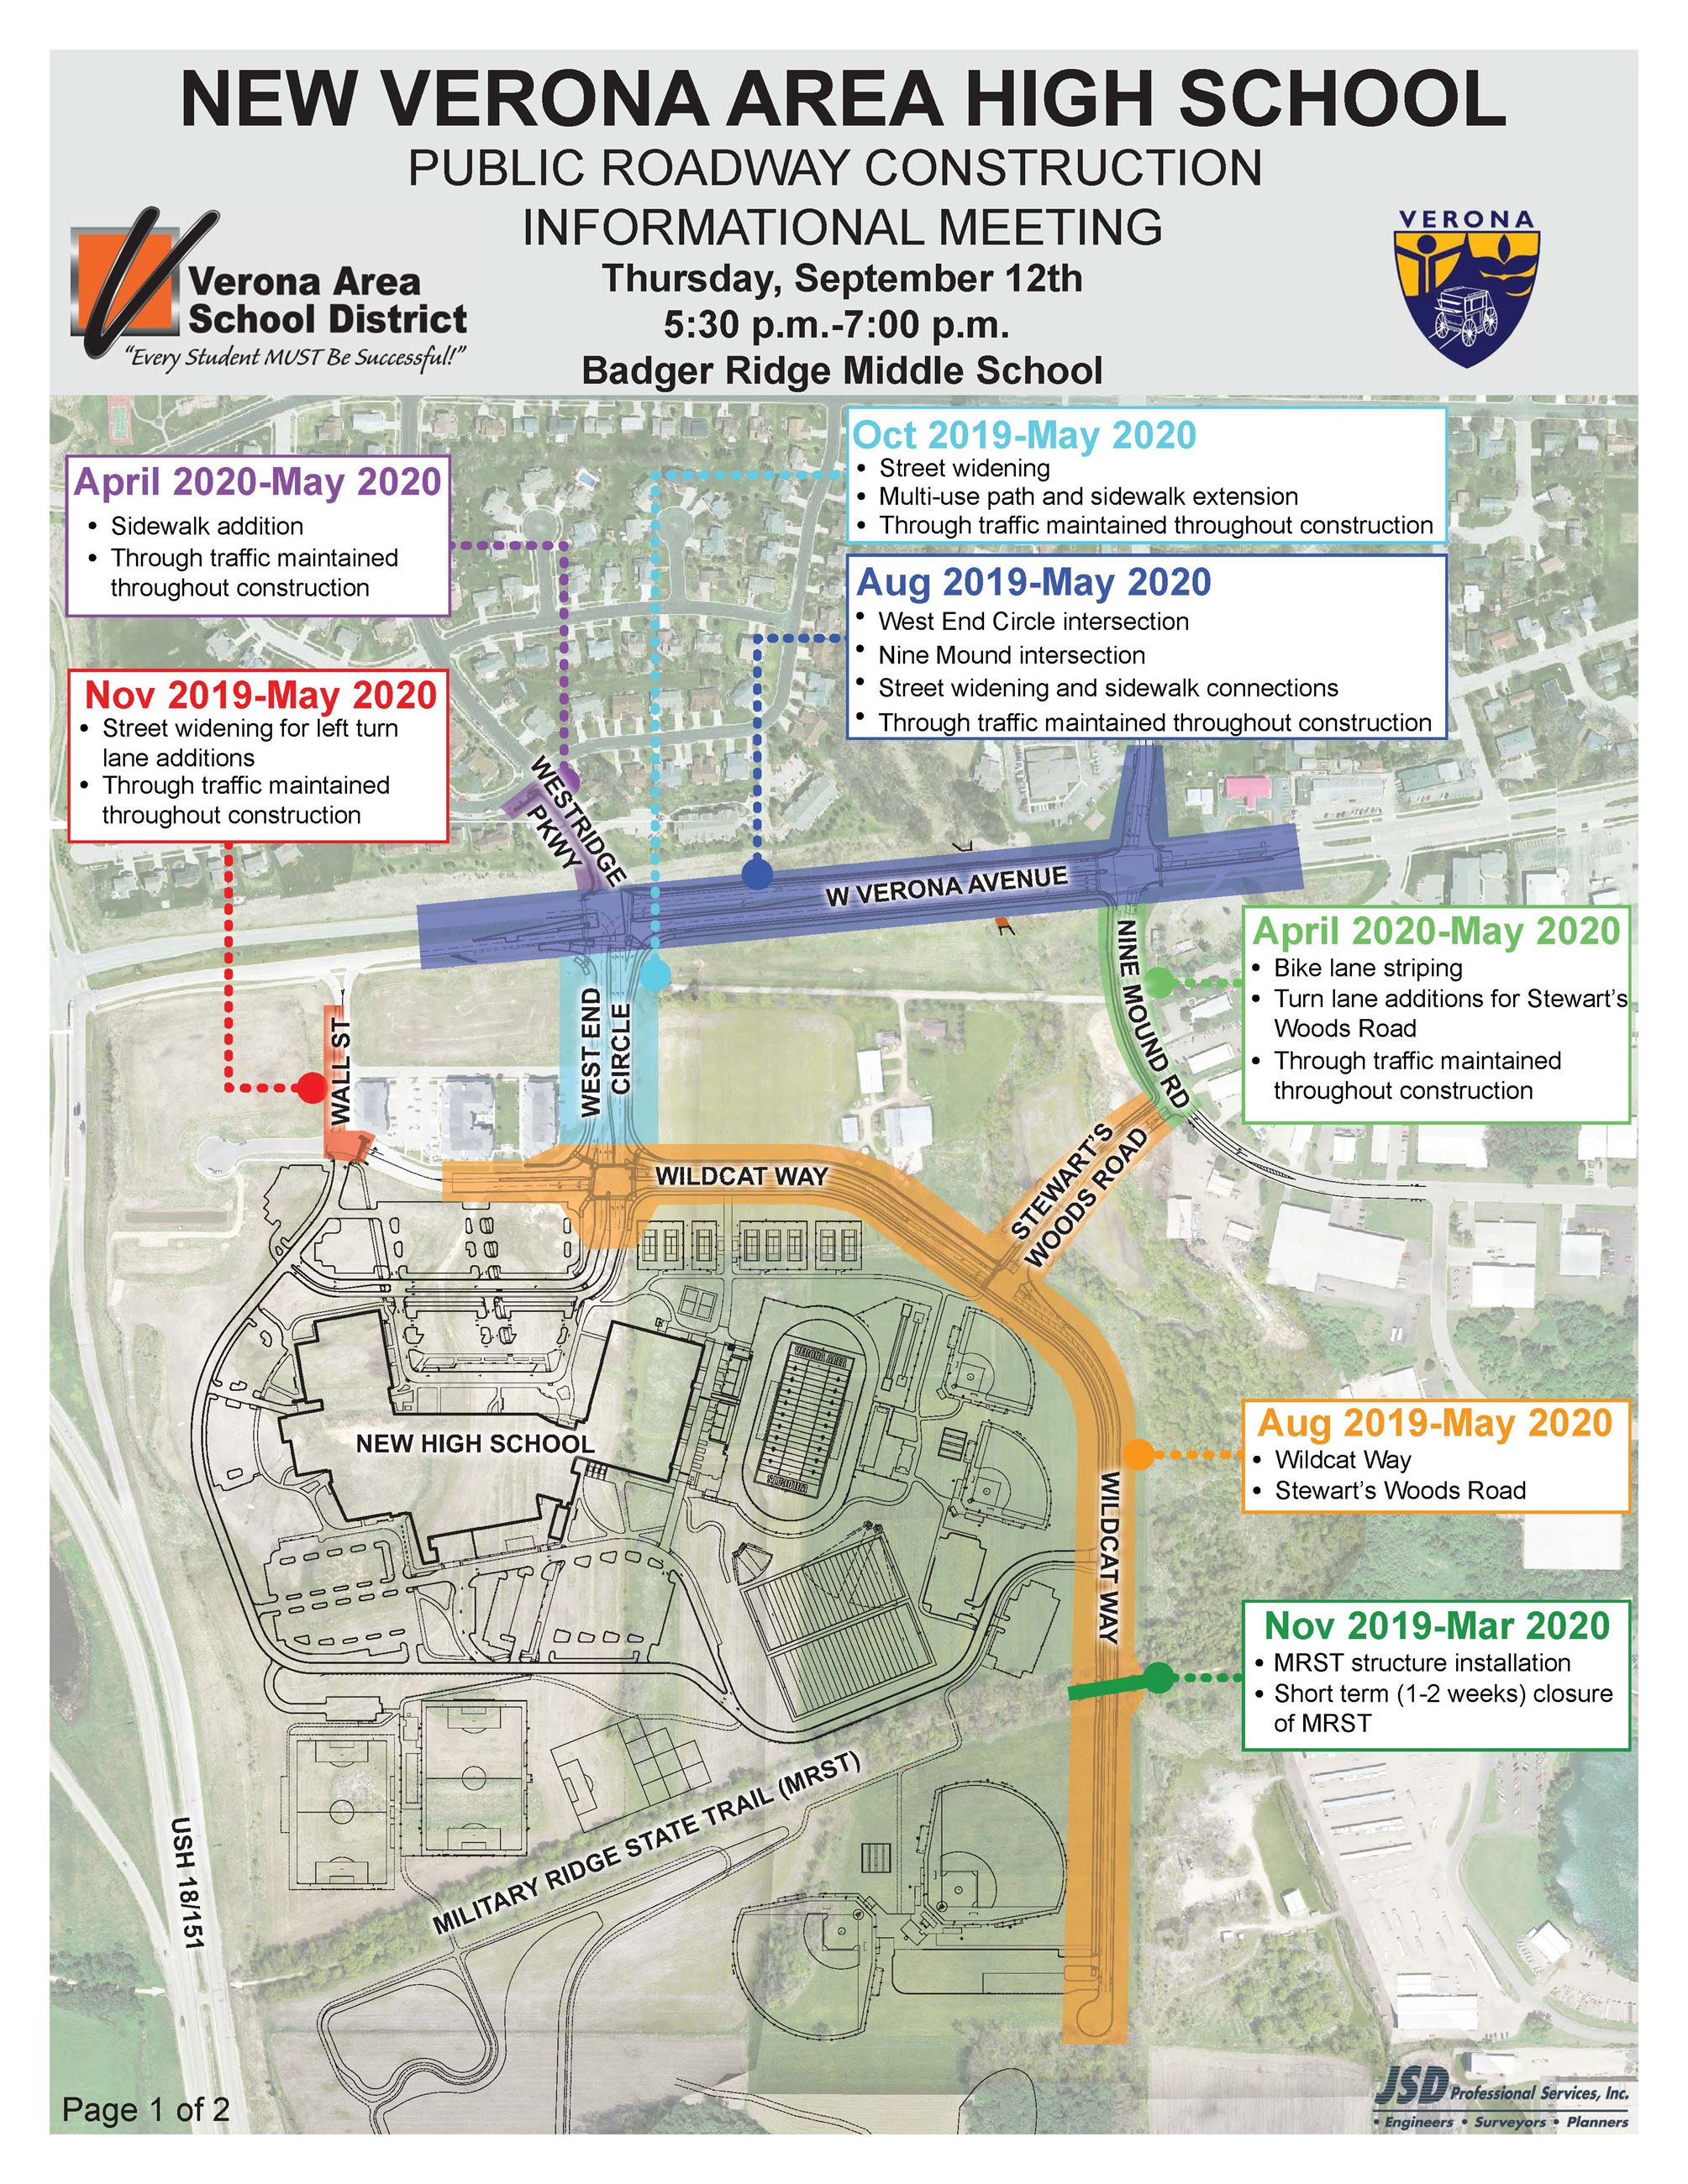 VAHS Public Information Meeting exhibit of planned road construction near new high school.